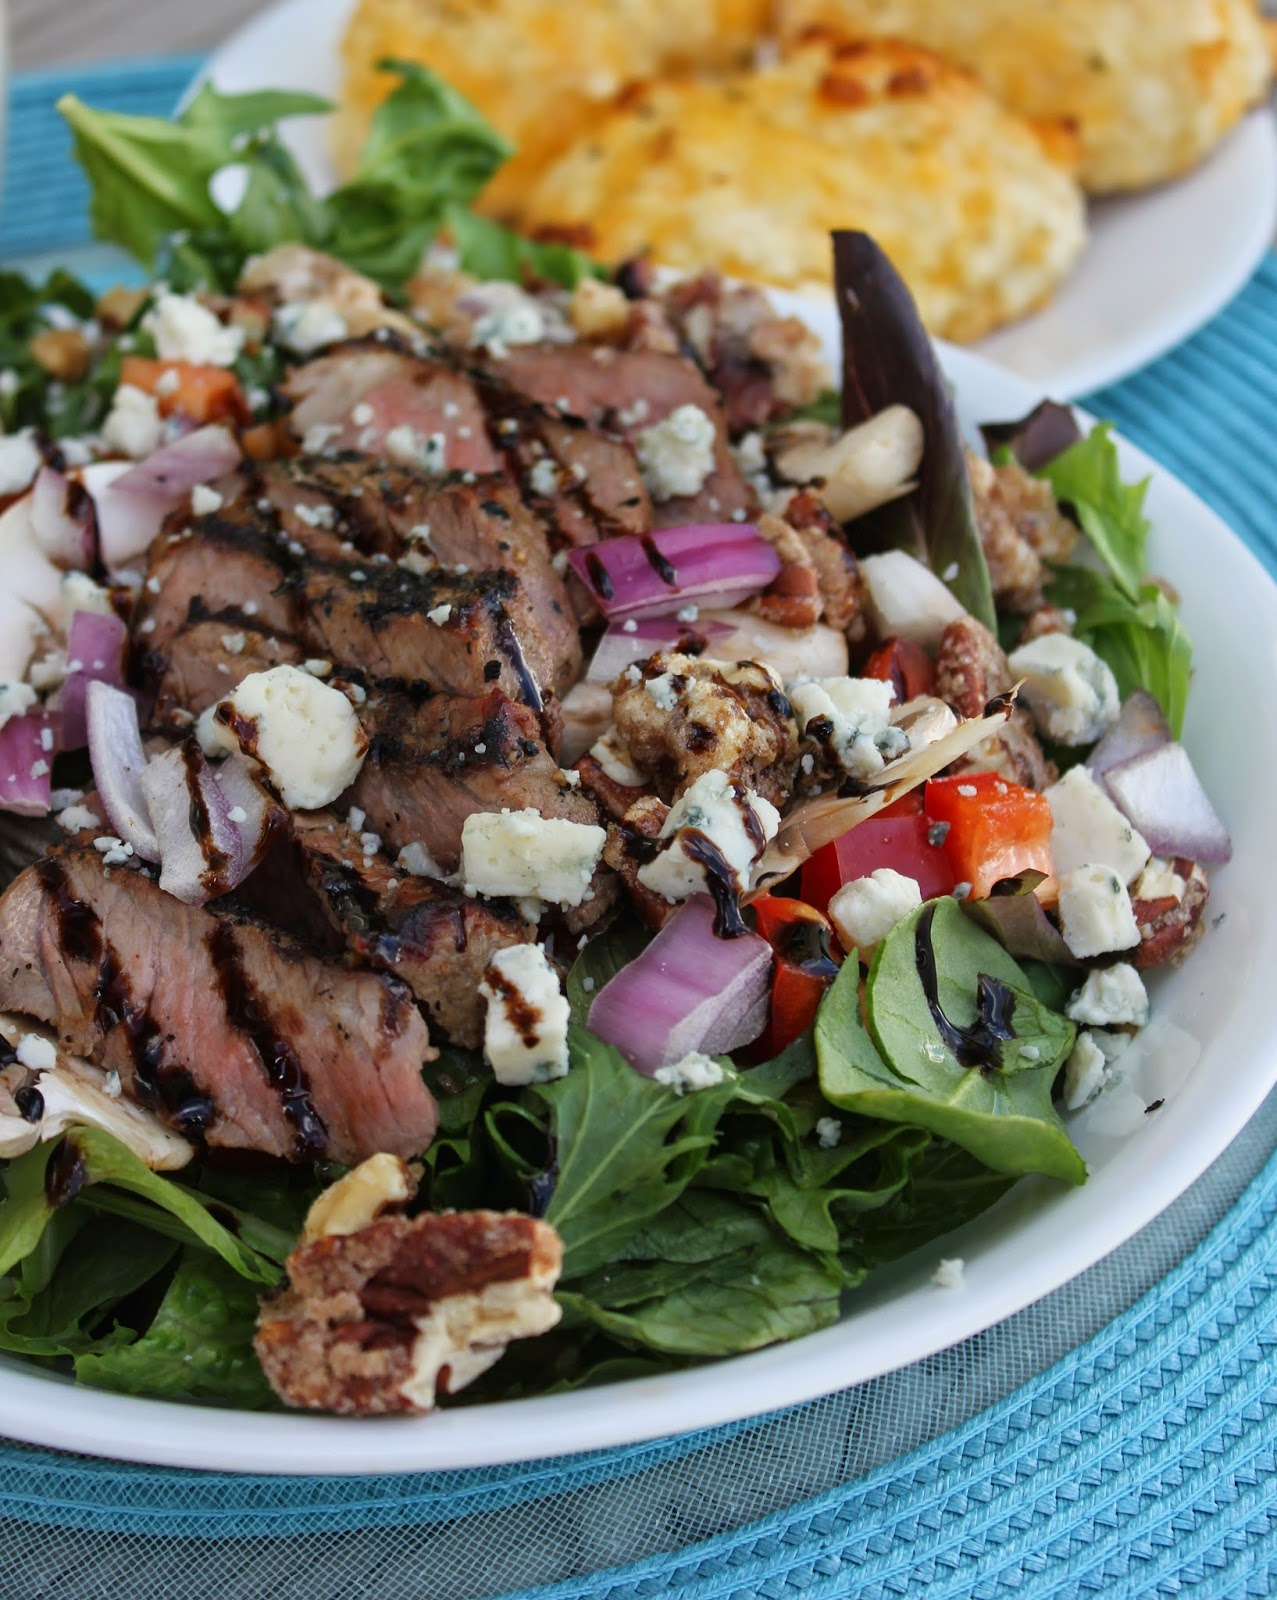 Favorite Restaurants, Brio Tuscan Grill, Recipe:  Salad, Recipe:  Beef, main dish salads, gorgonzola, Sliced Steak Salad, creamy horseradish dressing